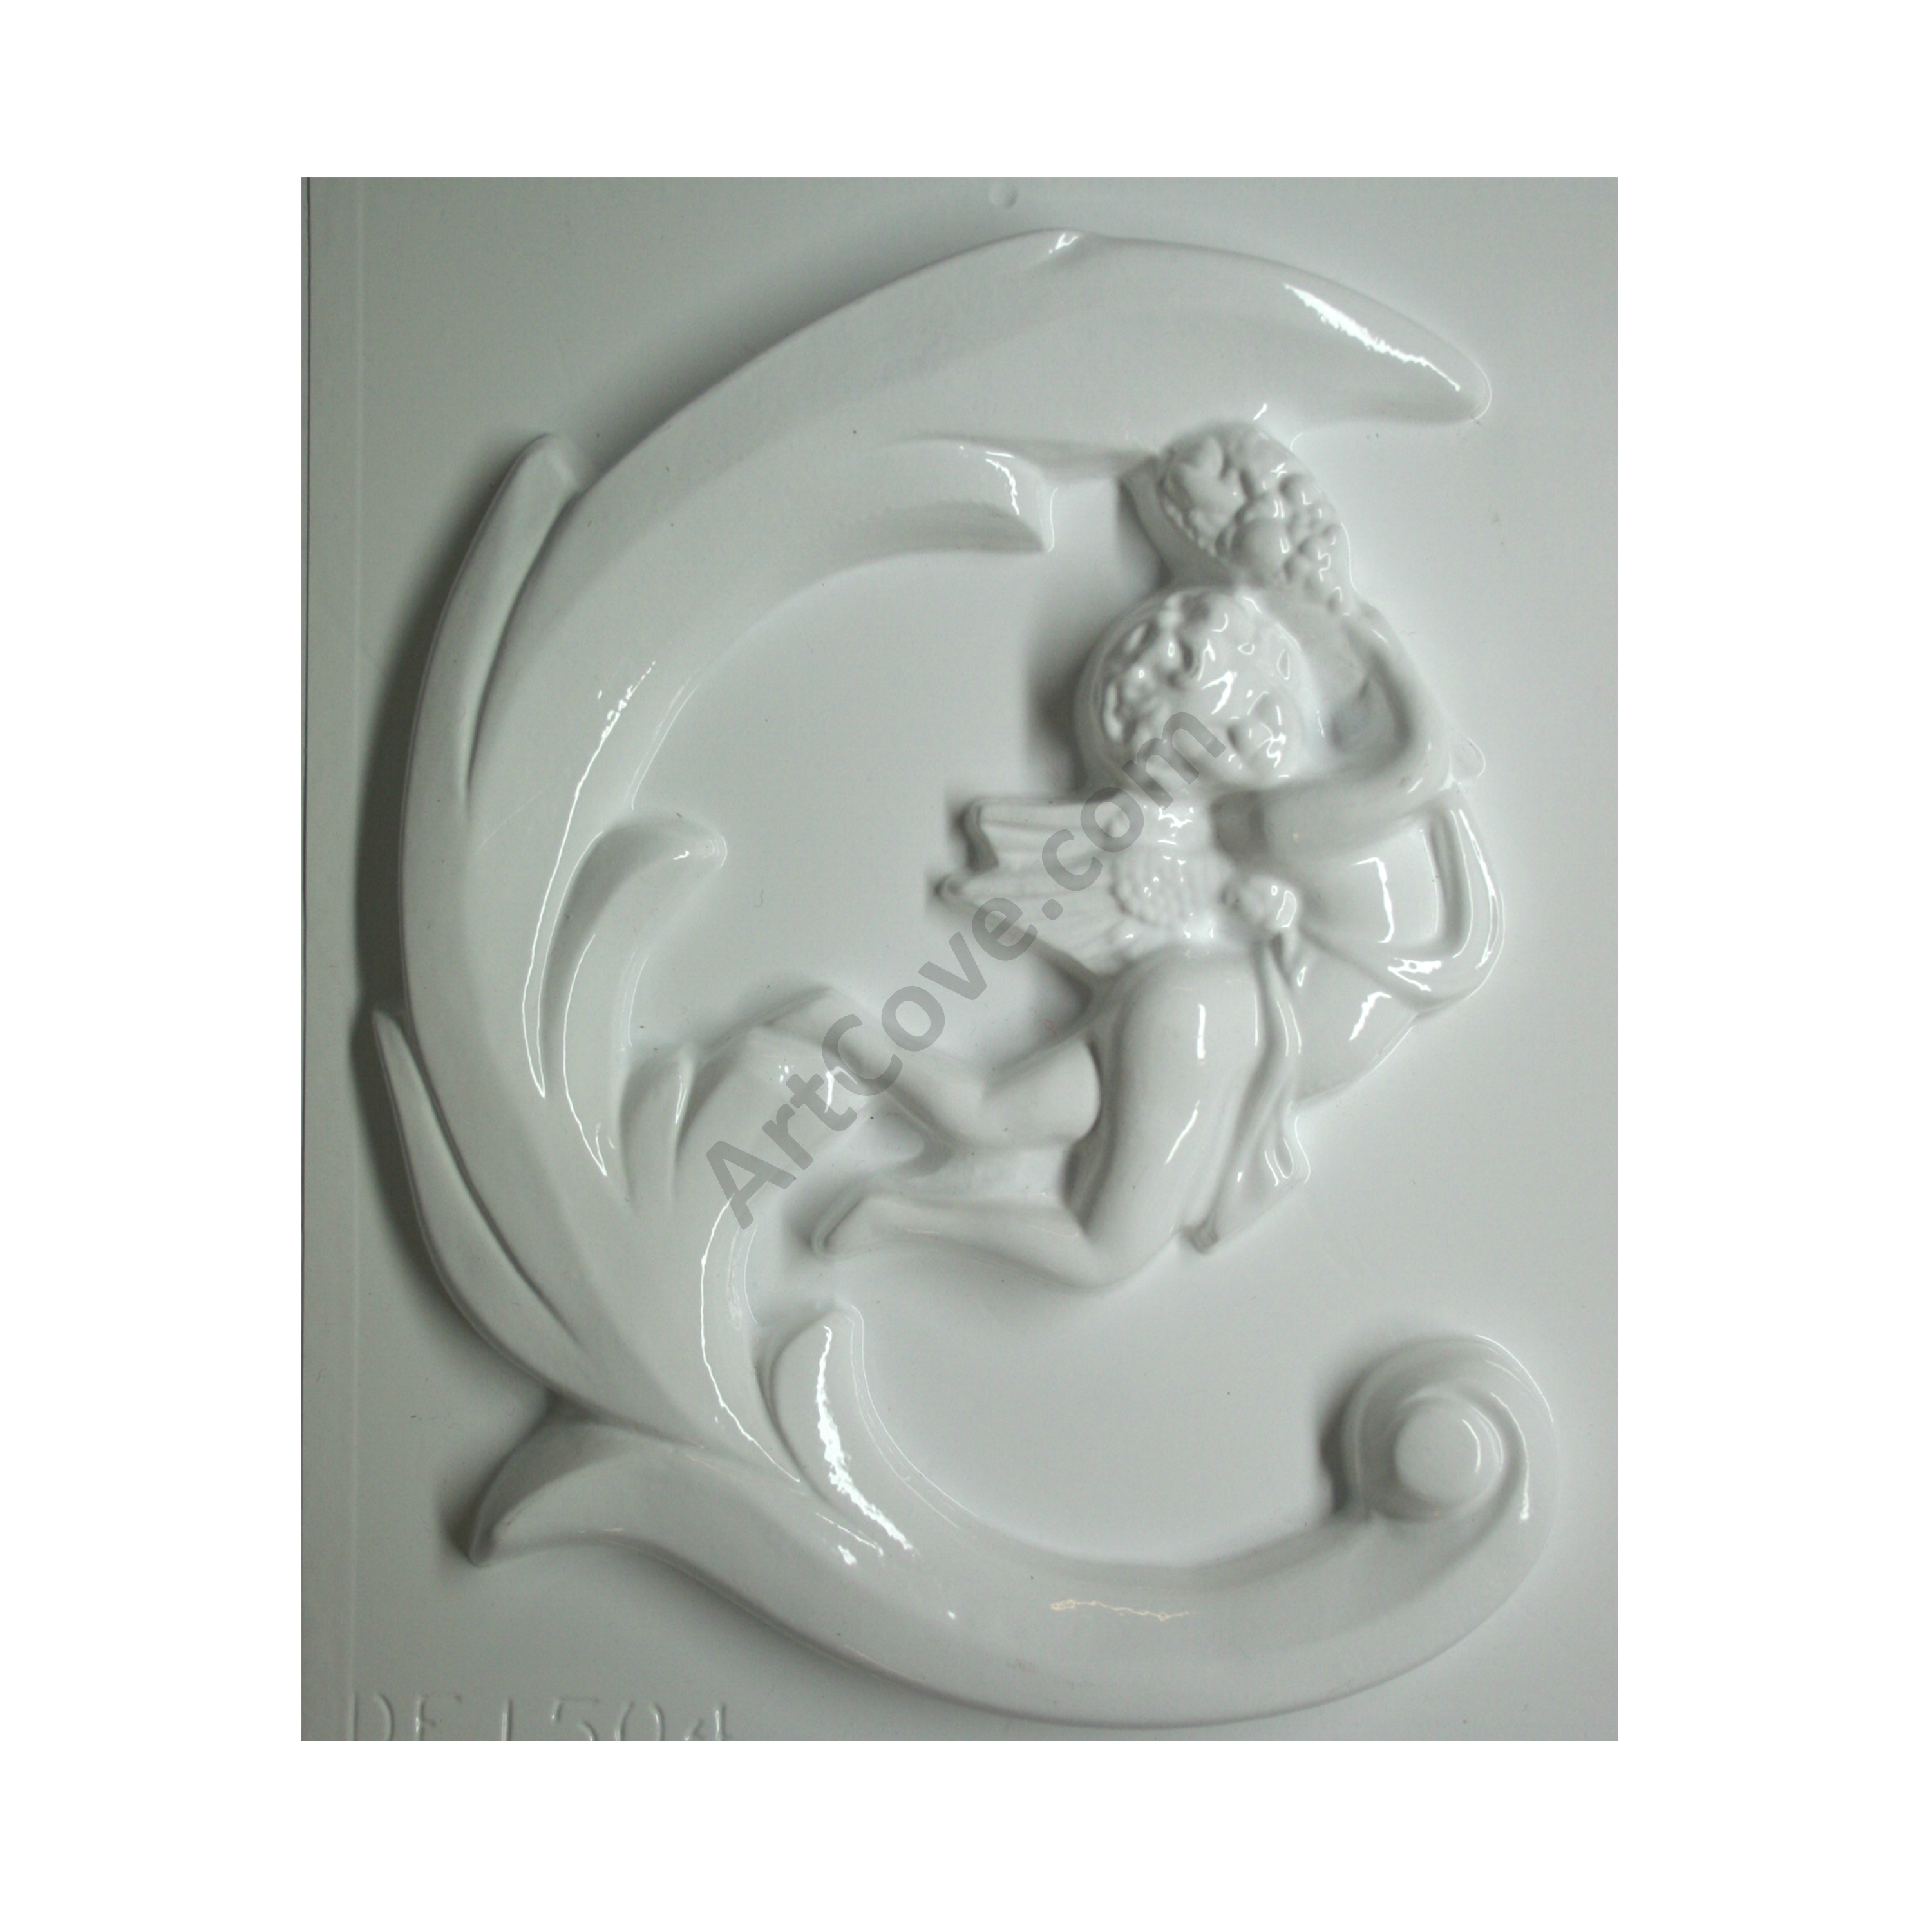 Angel In Arch Plaster Mold 9 1 2 X 11 Inch We Carry The Largest Selection Of Plaster Molds For Sale O Plaster Molds Inexpensive Crafts Craft Projects For Kids